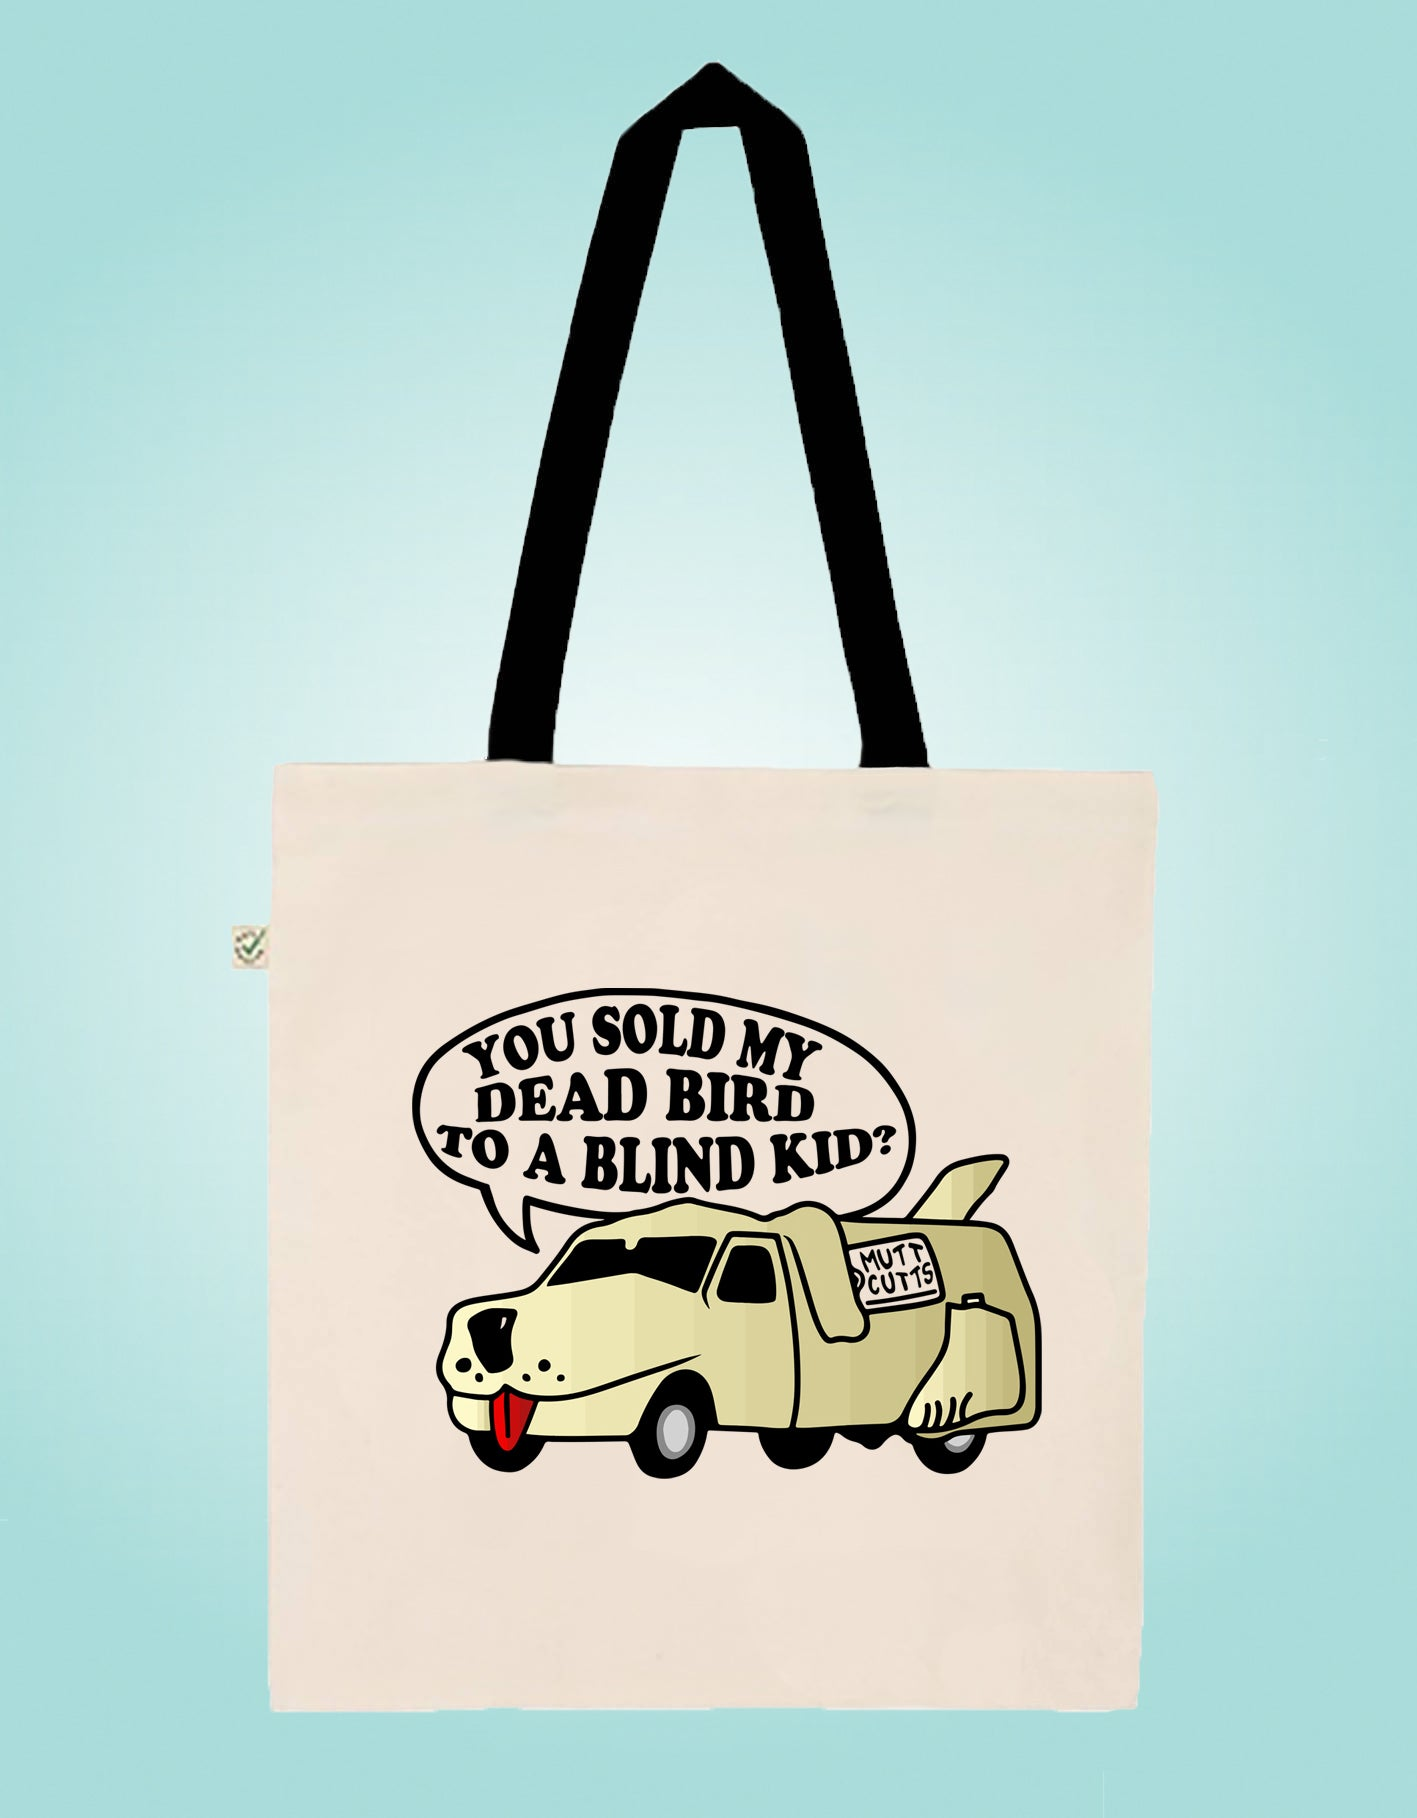 Dumb and Dumber - Earth Positive Ethical tote.